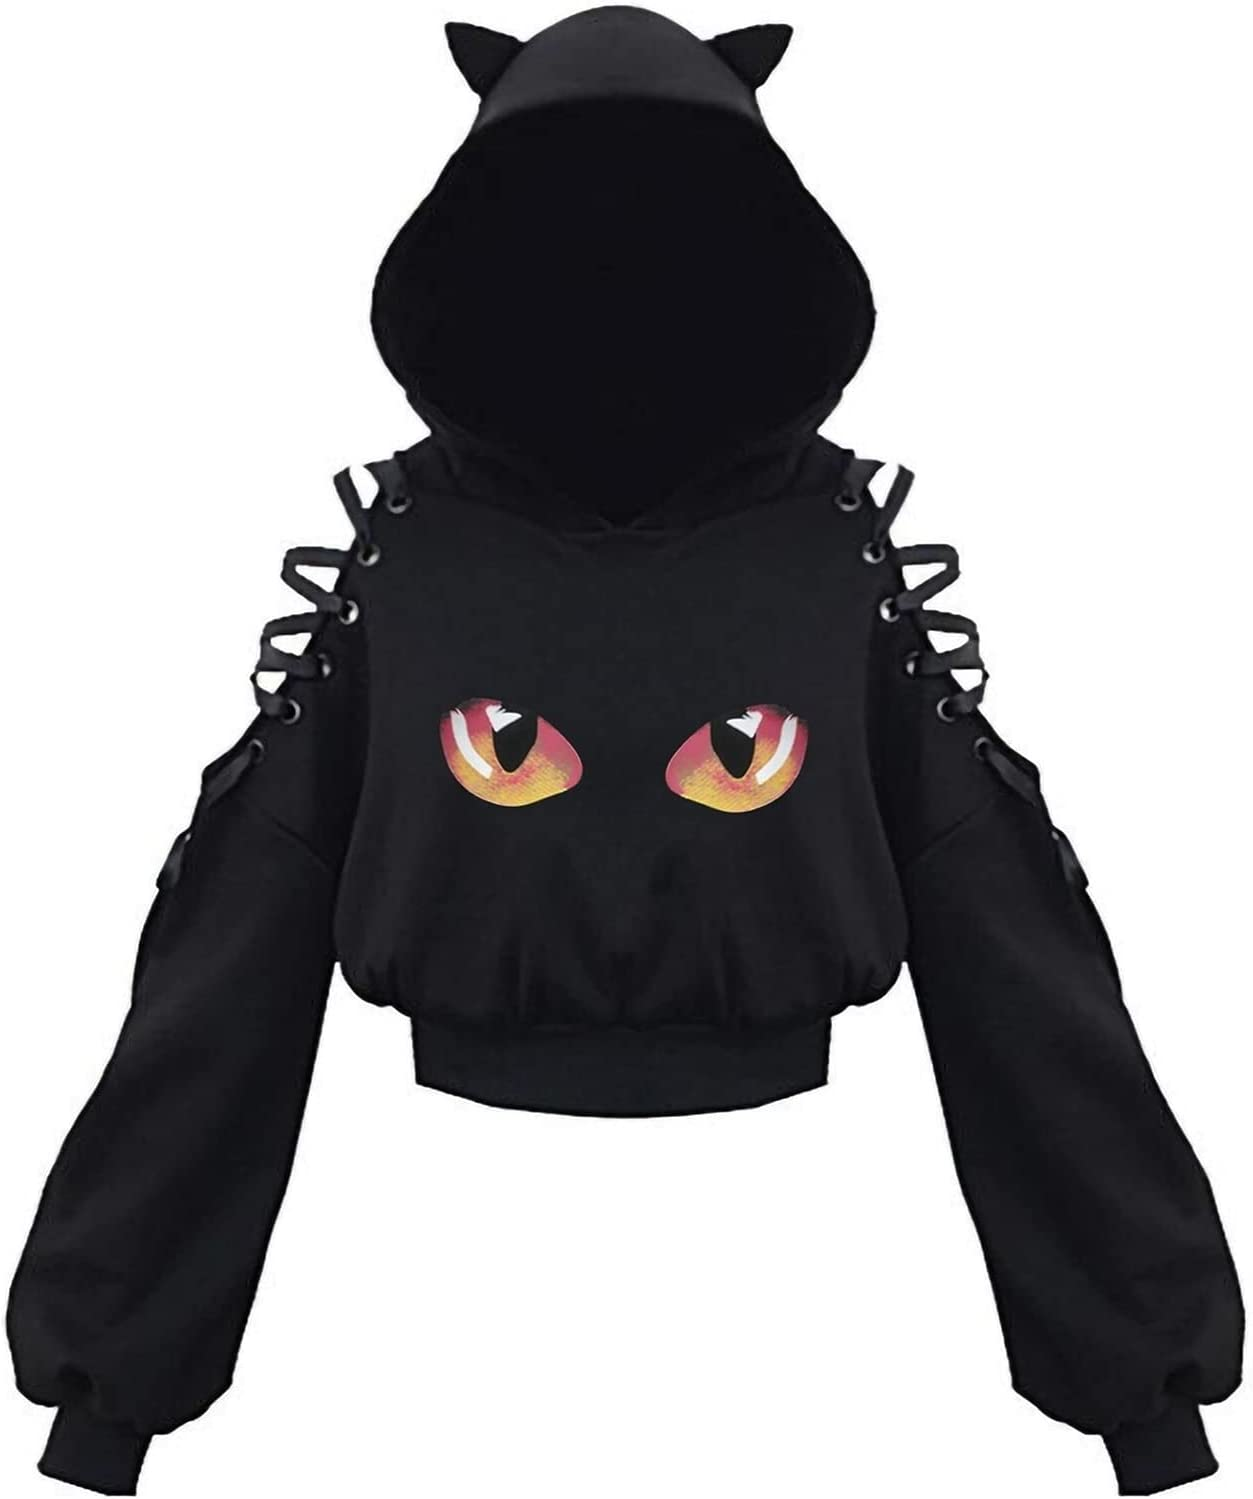 Spring new work one after another Gifts FENGYKE Ladies Clothes Gothic Women Cat Ear Women's L Sweatshirt